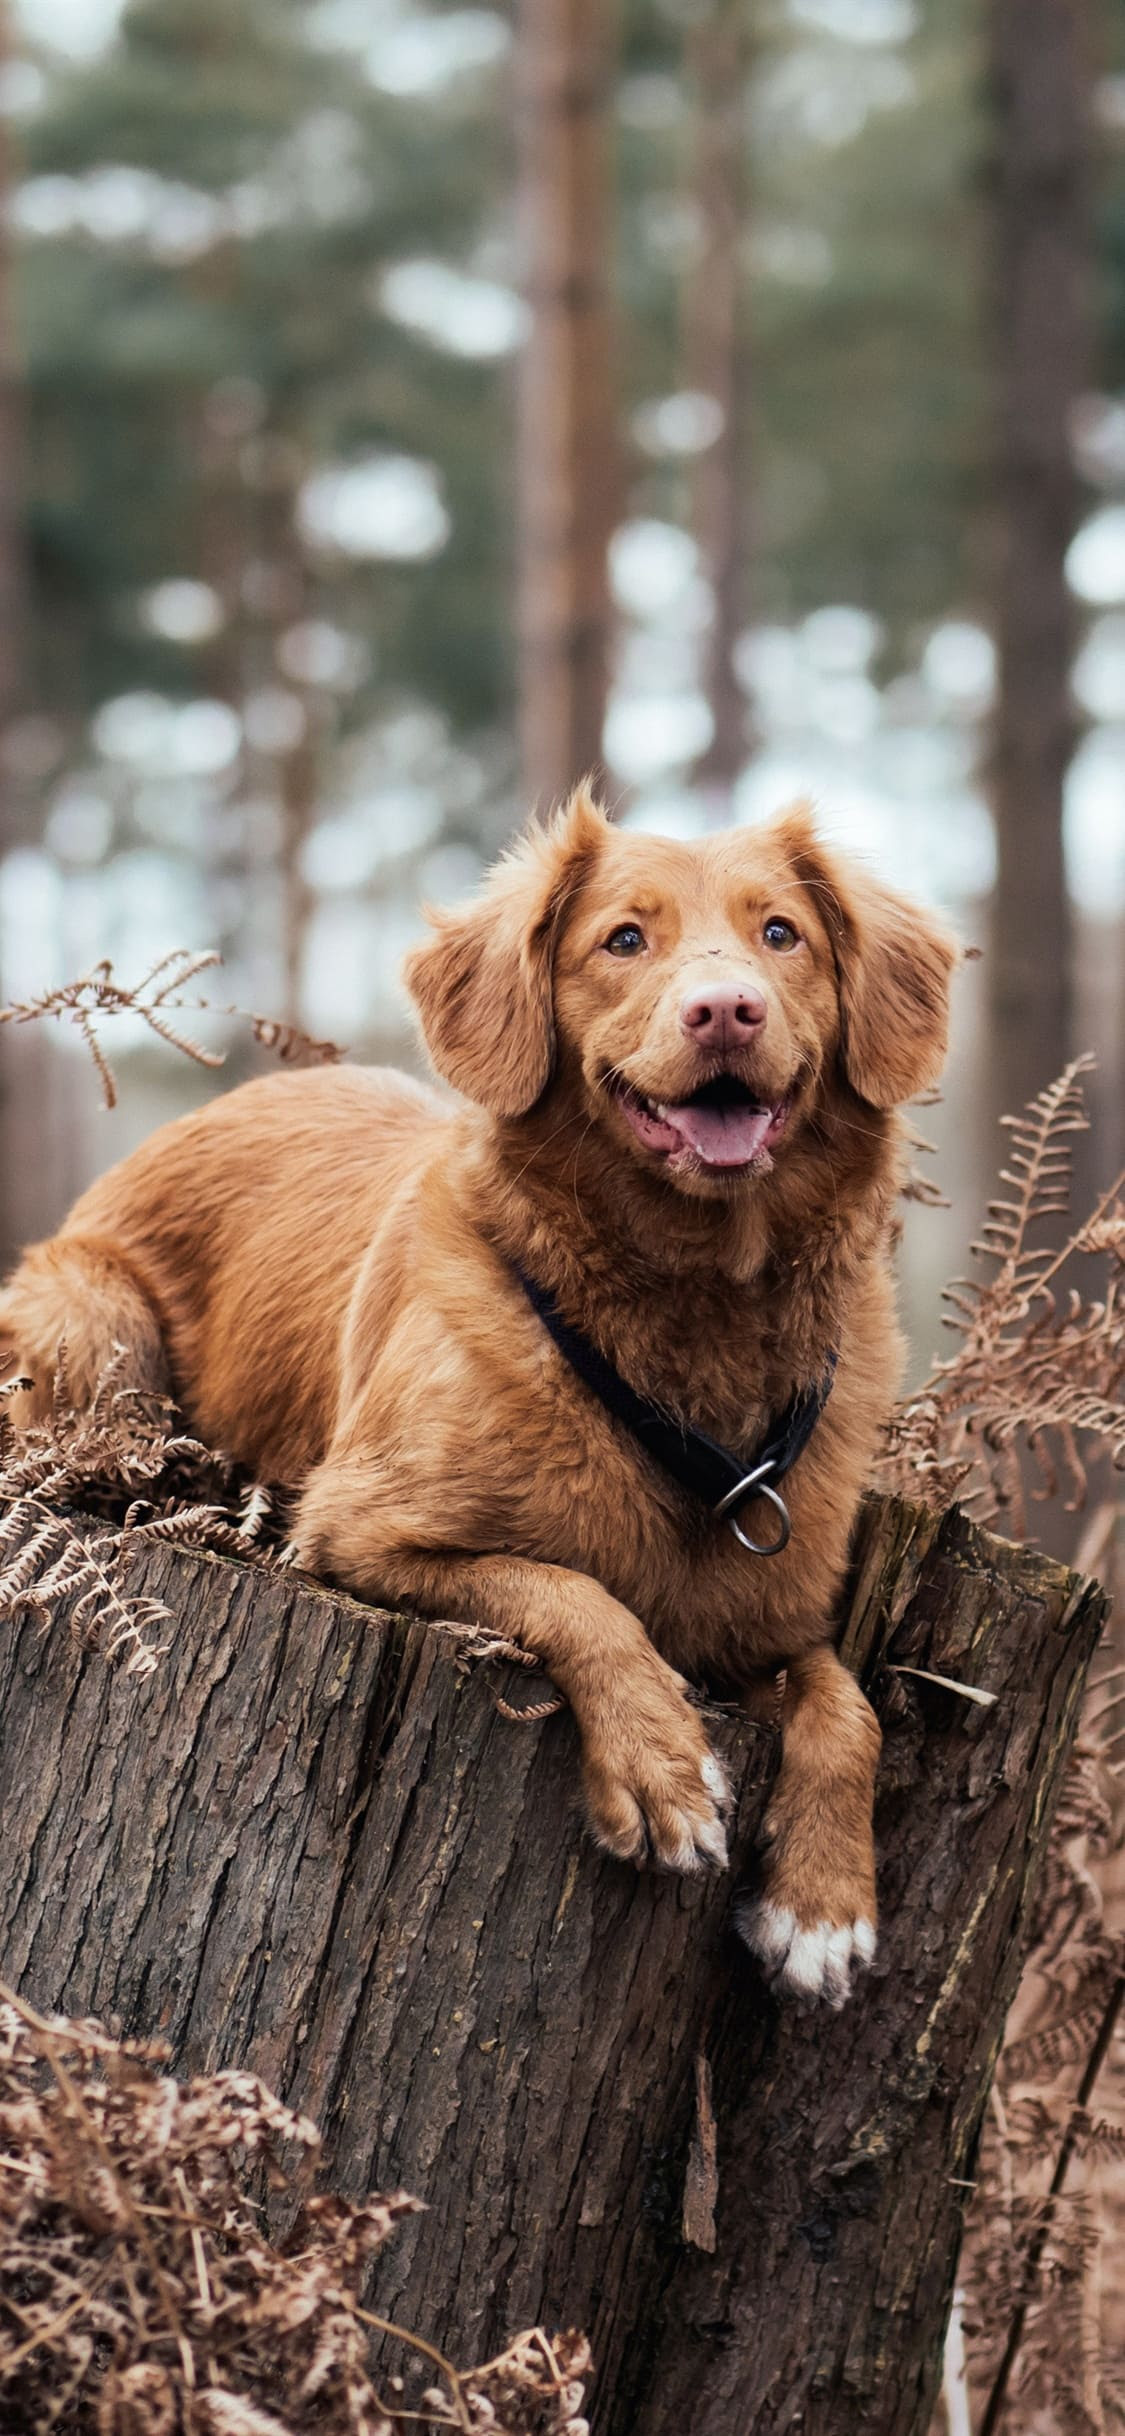 Dog Wallpapers Getty Wallpapers